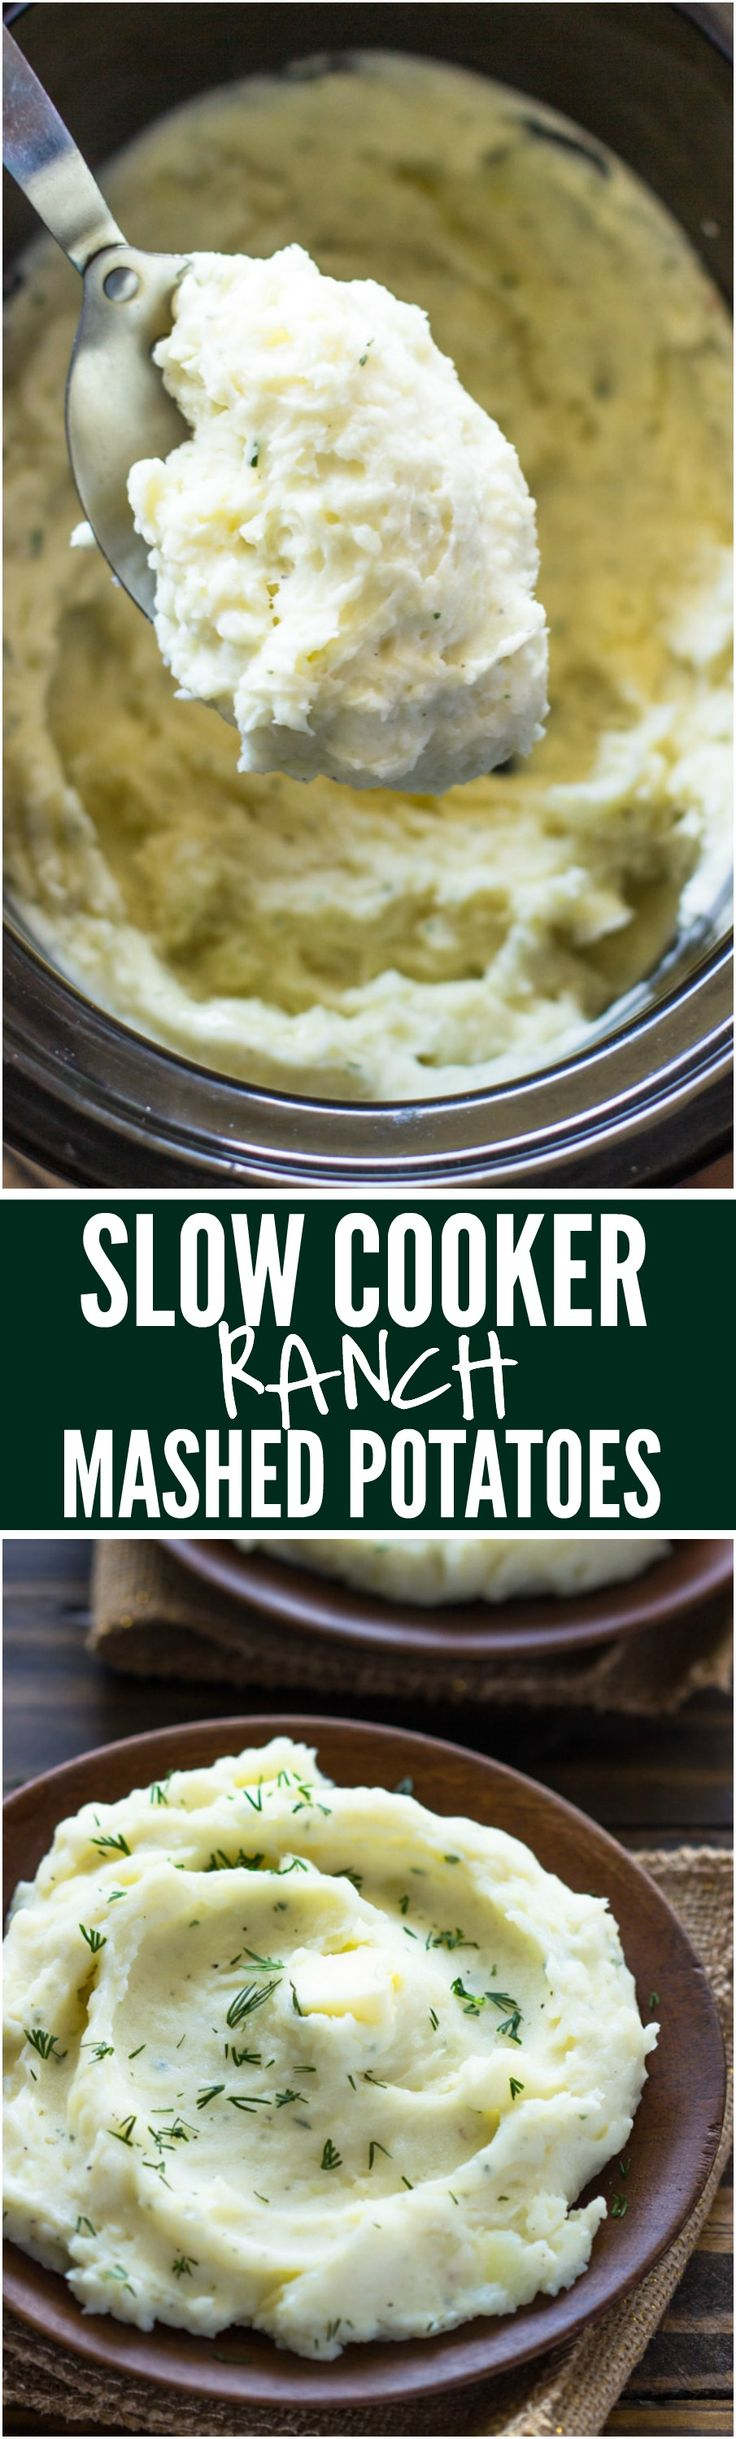 Creamy, fluffy, and extremely delicious. Mashed potatoes just got a whole lot better with the addition of ranch. Plus, it's all done in your slow cooker.